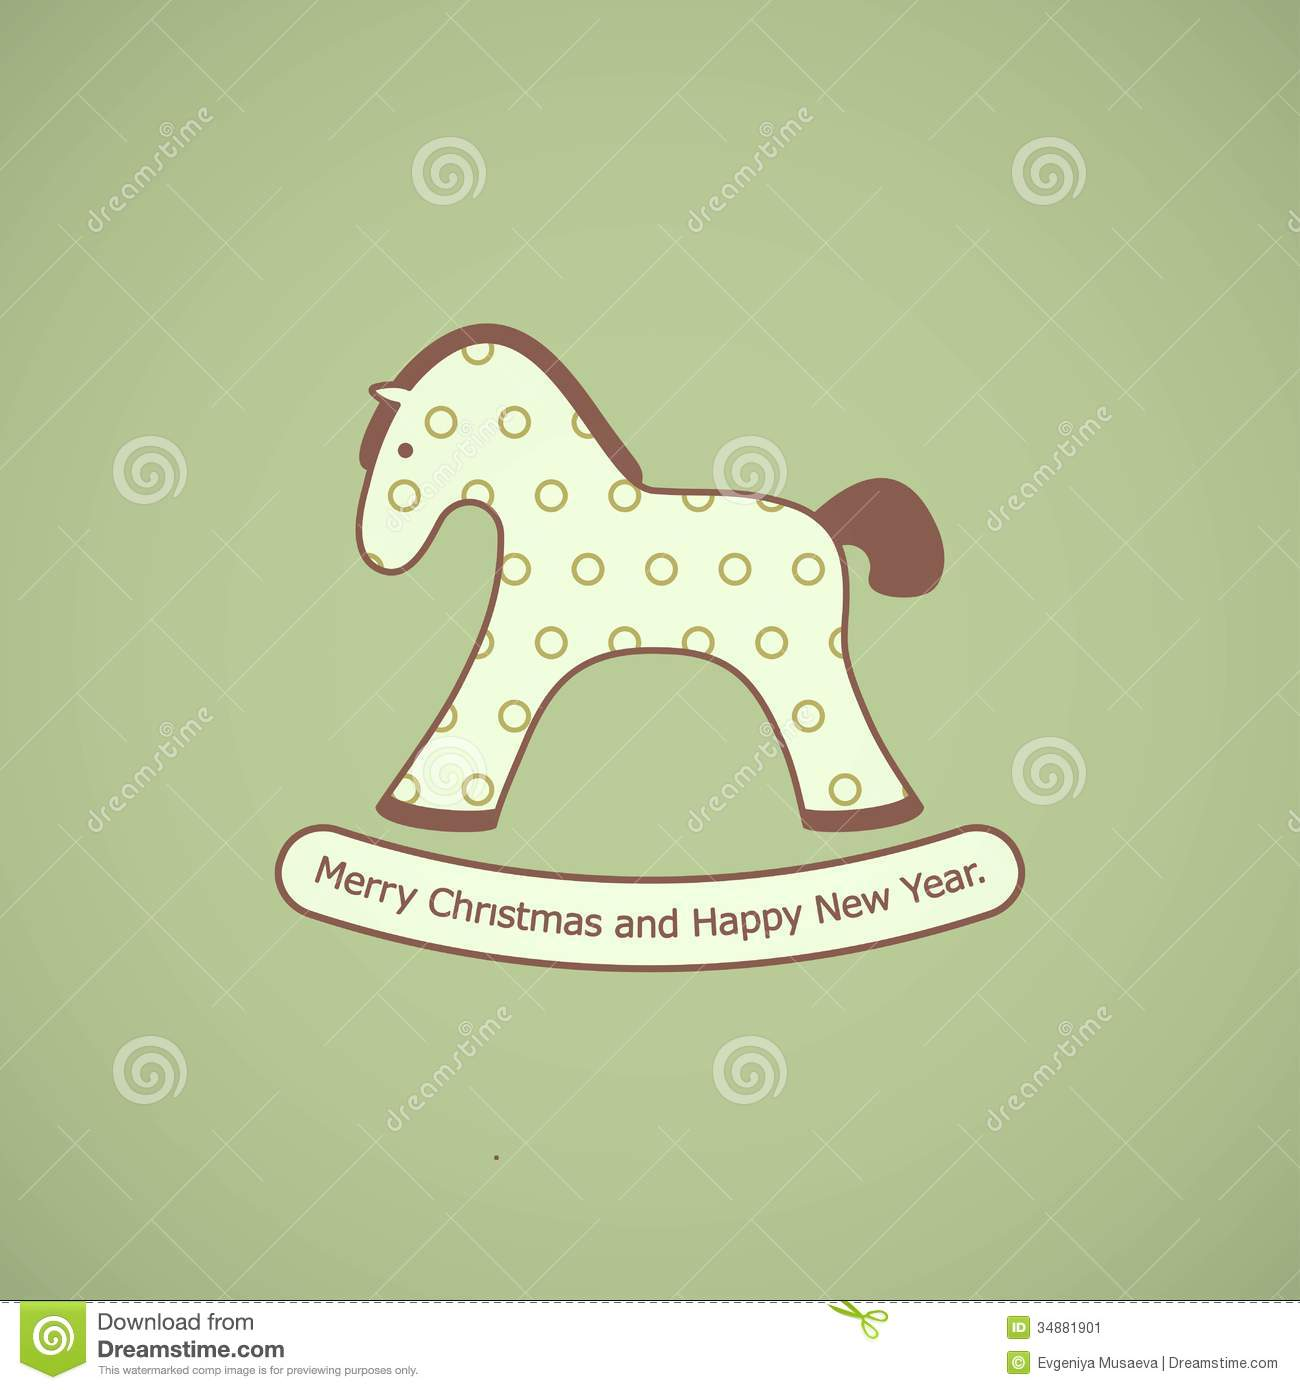 Christmas Card With Rocking Toy Horse Stock Vector Illustration Of Invitation Sweet 34881901